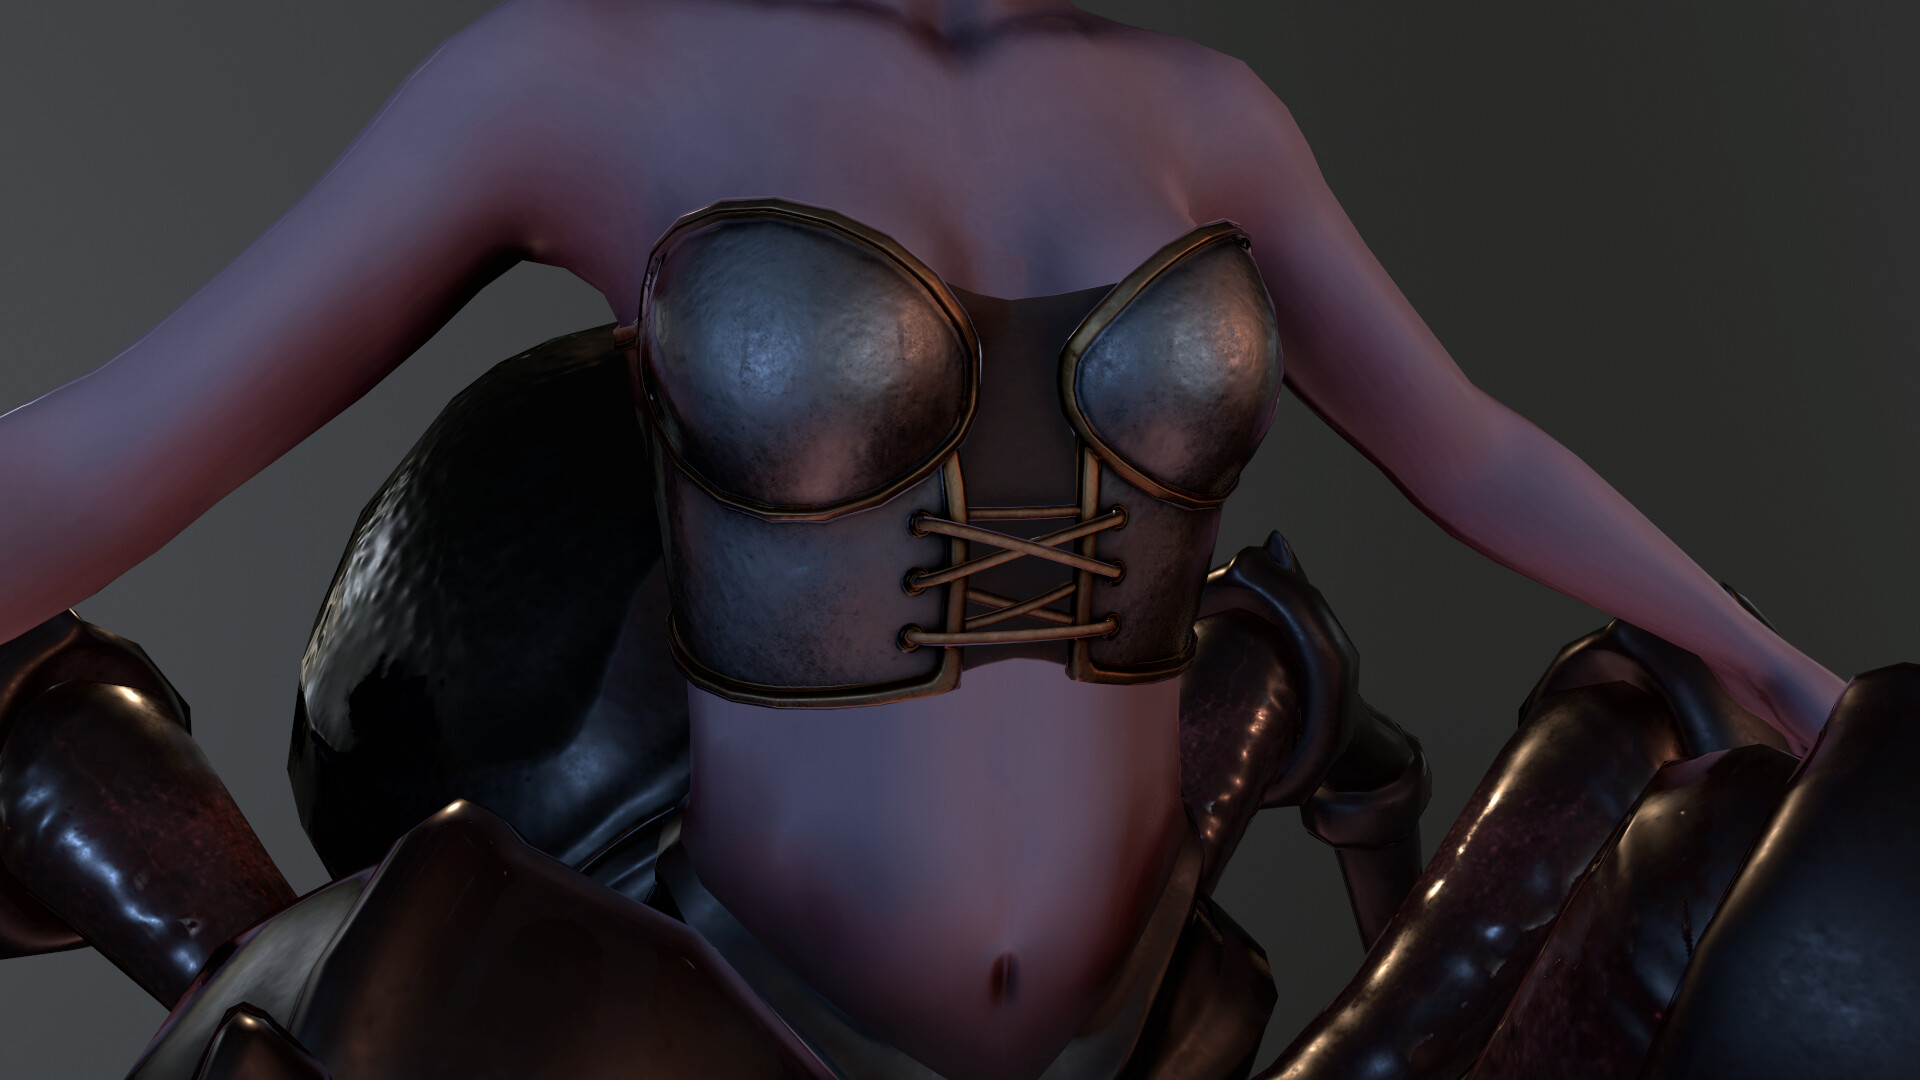 Brx taleshi 5 xena breastplate beauty render